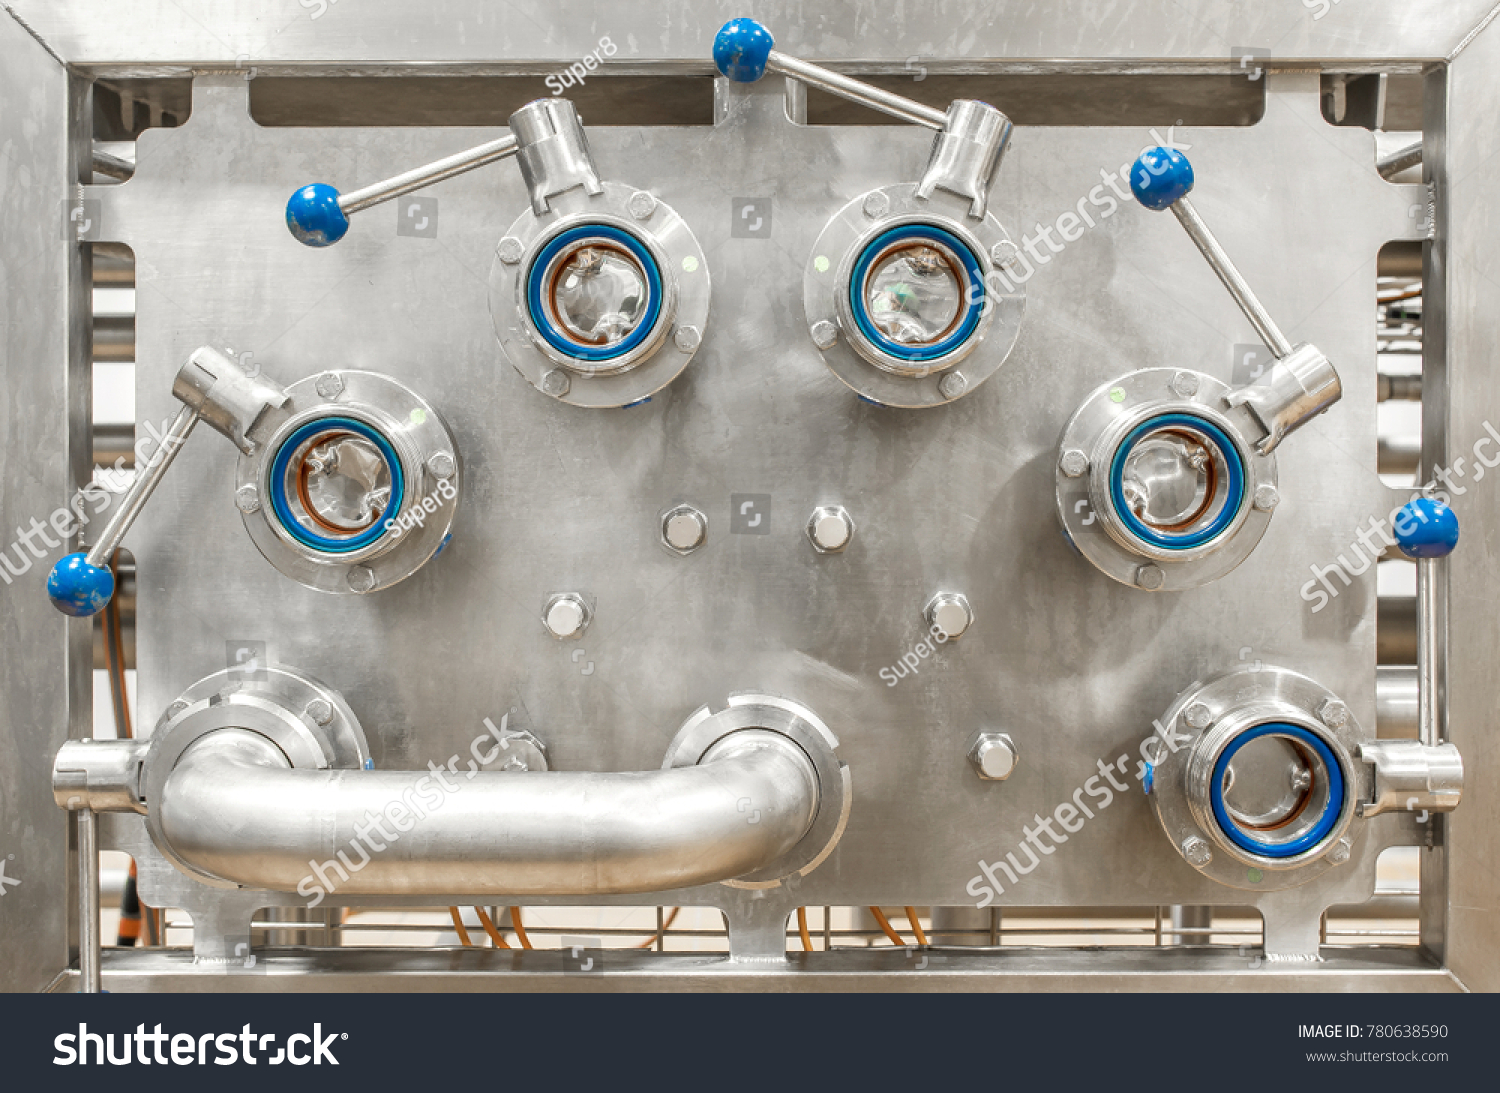 stock-photo-panel-for-connecting-pipes-p